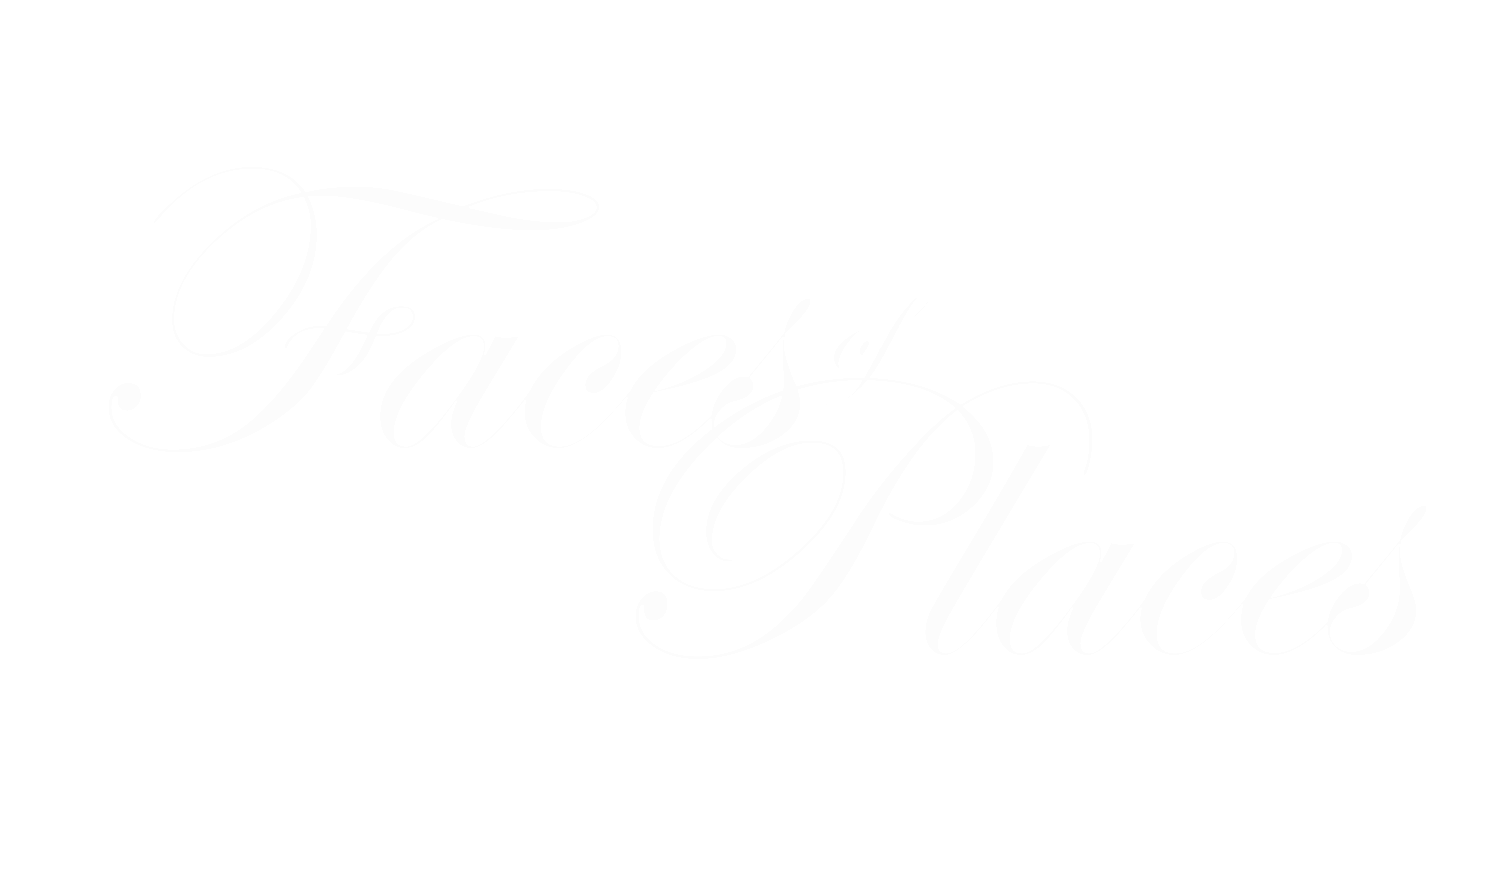 Faces of Places